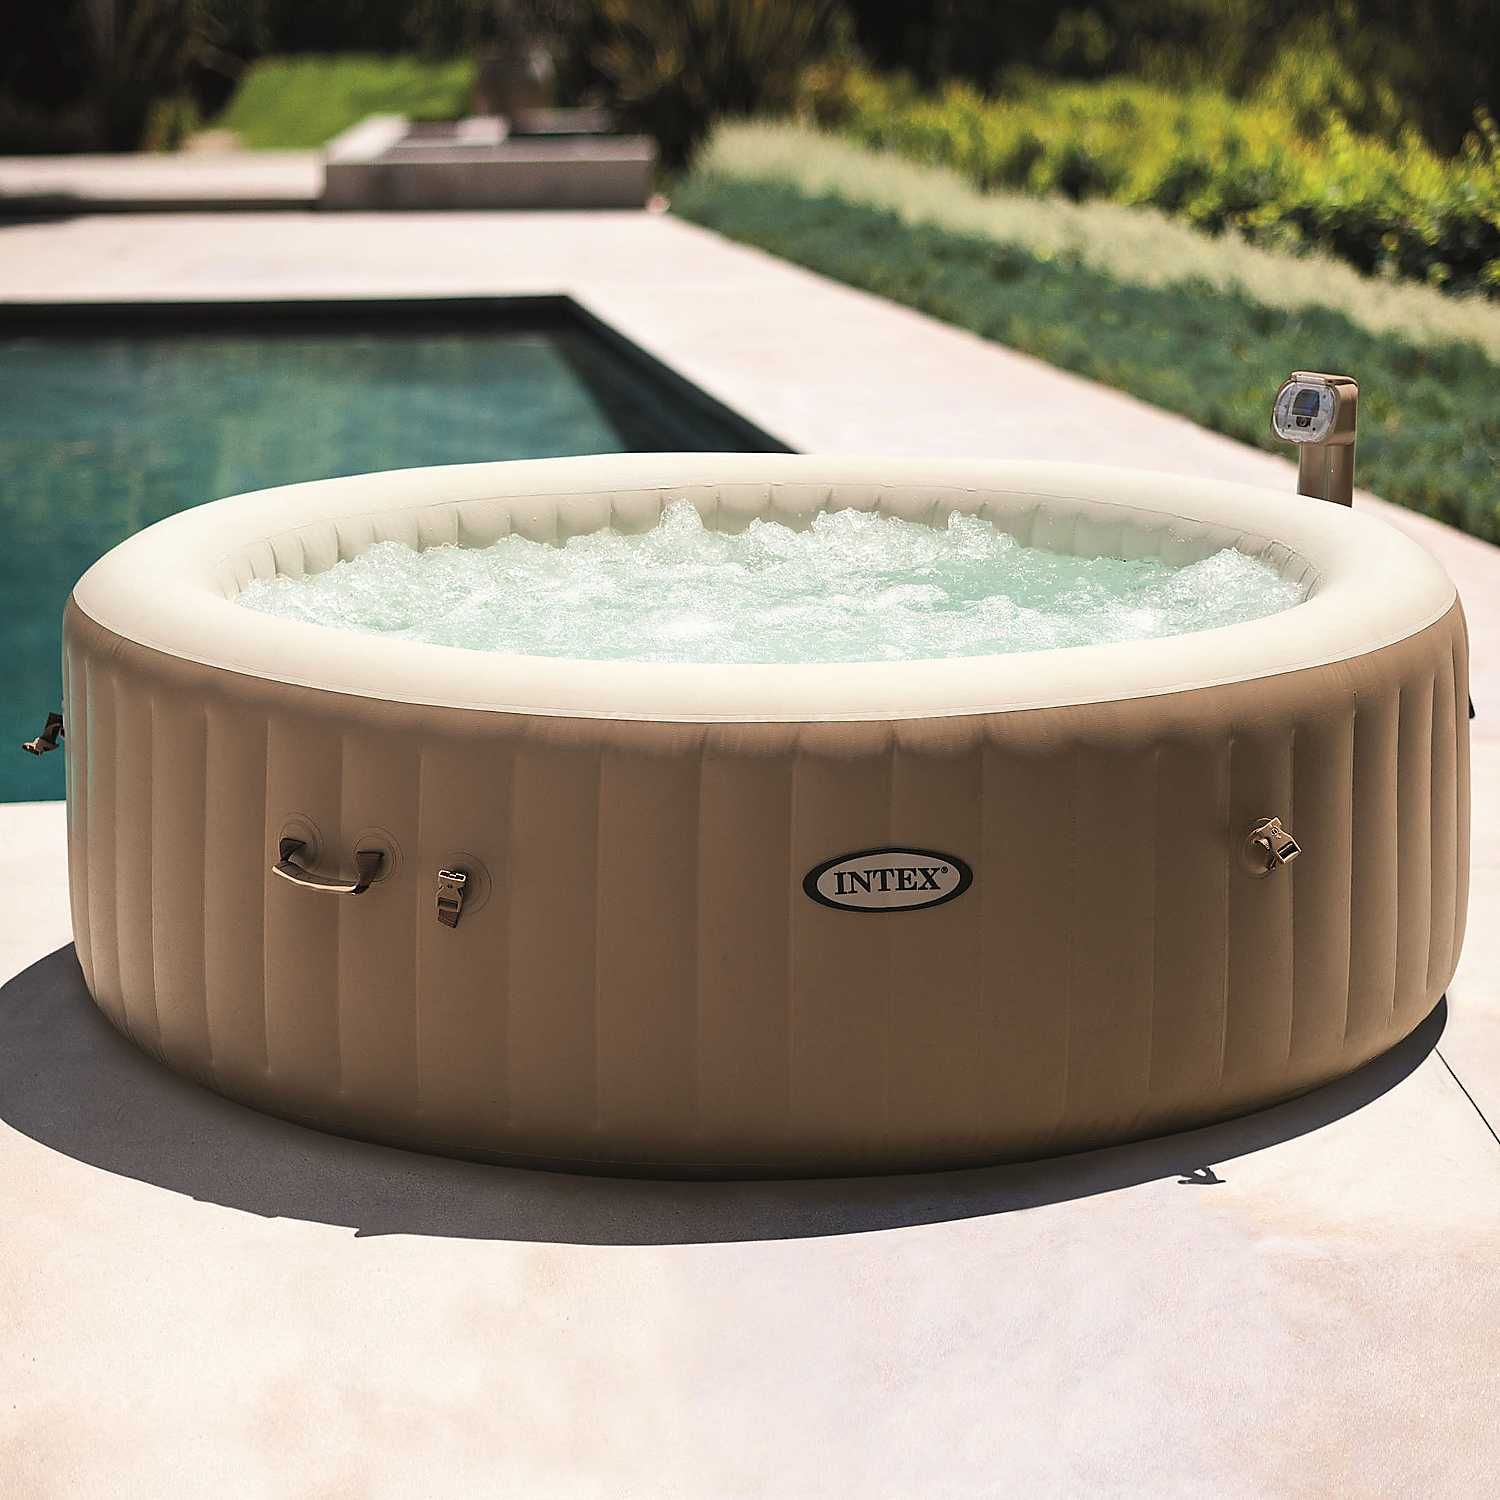 Intex Purespa 6 Person Bubble Round Hot Tub Jacuzzi